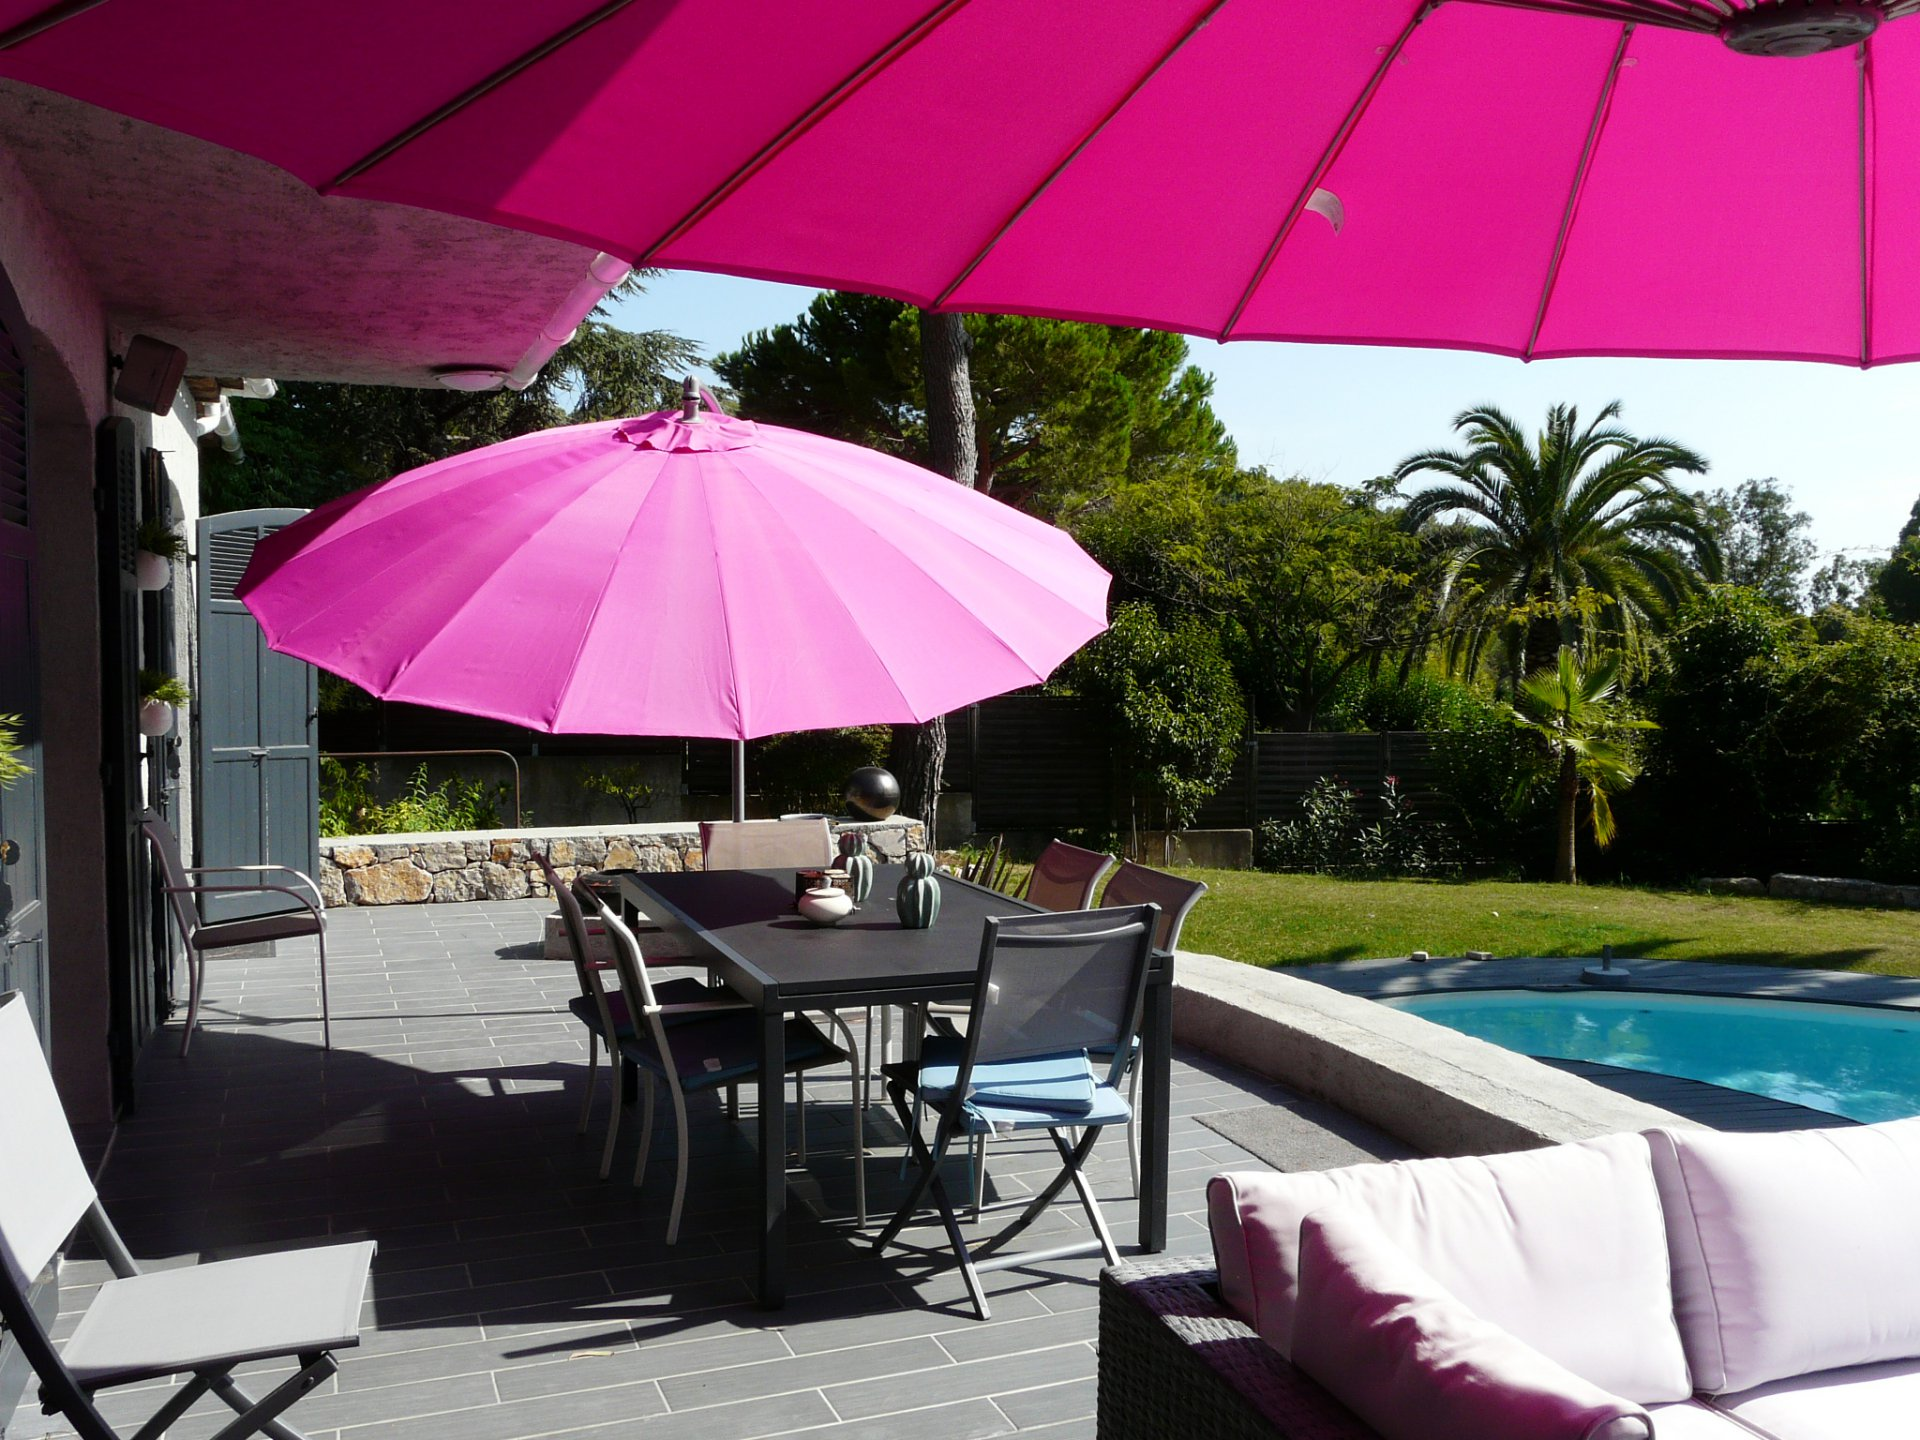 FURNISHED MODERN PROVENCAL VILLA - YEARLY RENTAL